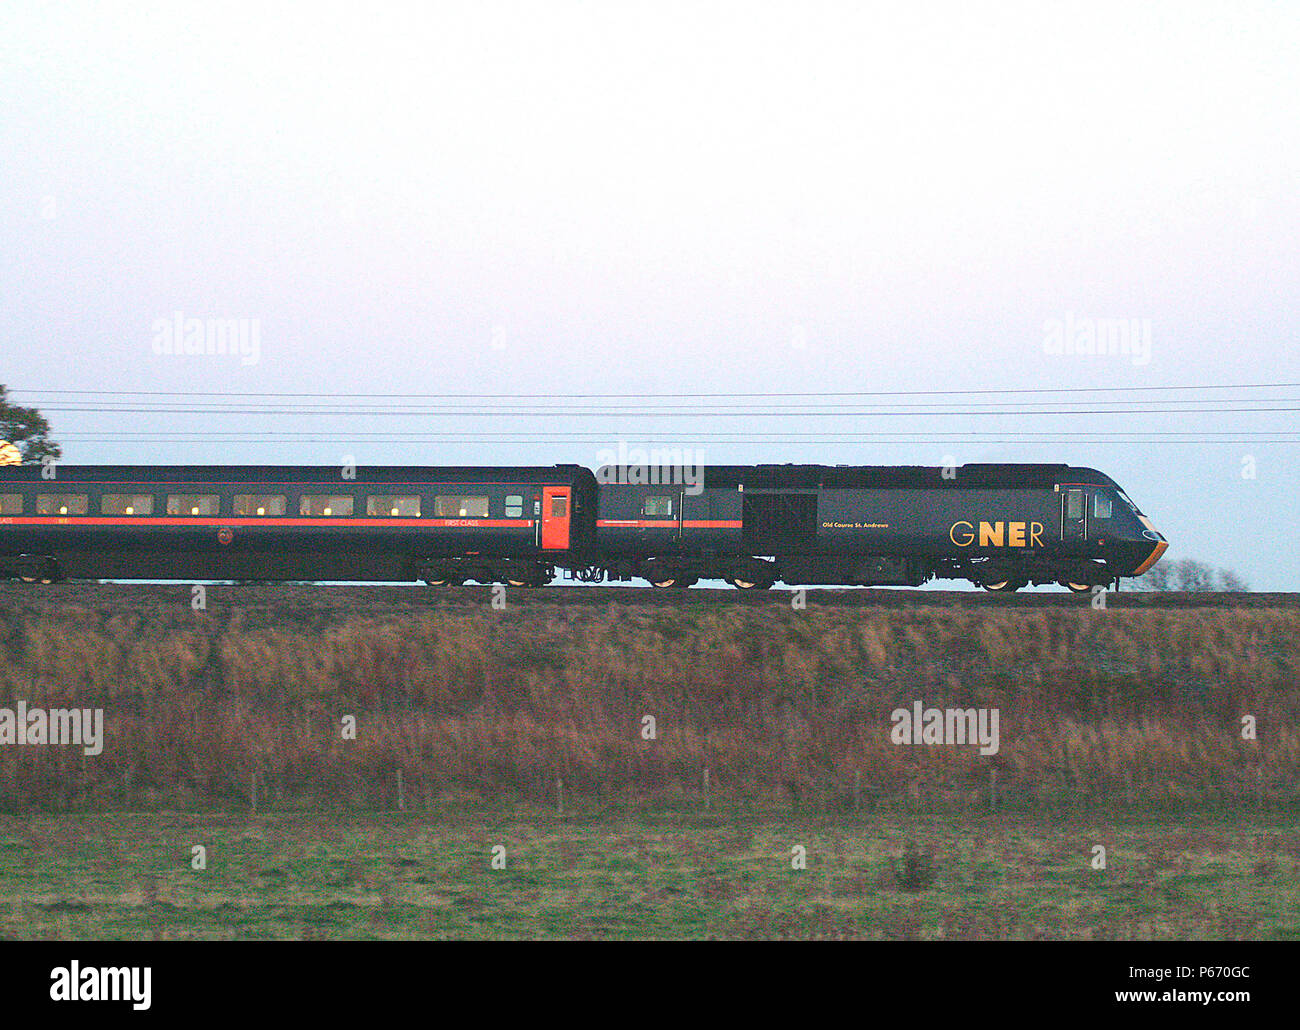 The HST fleet of GNER provides the traction for non-electrified routes feeding into the electrified ECML including this Aberdeen - Kings Cross service - Stock Image